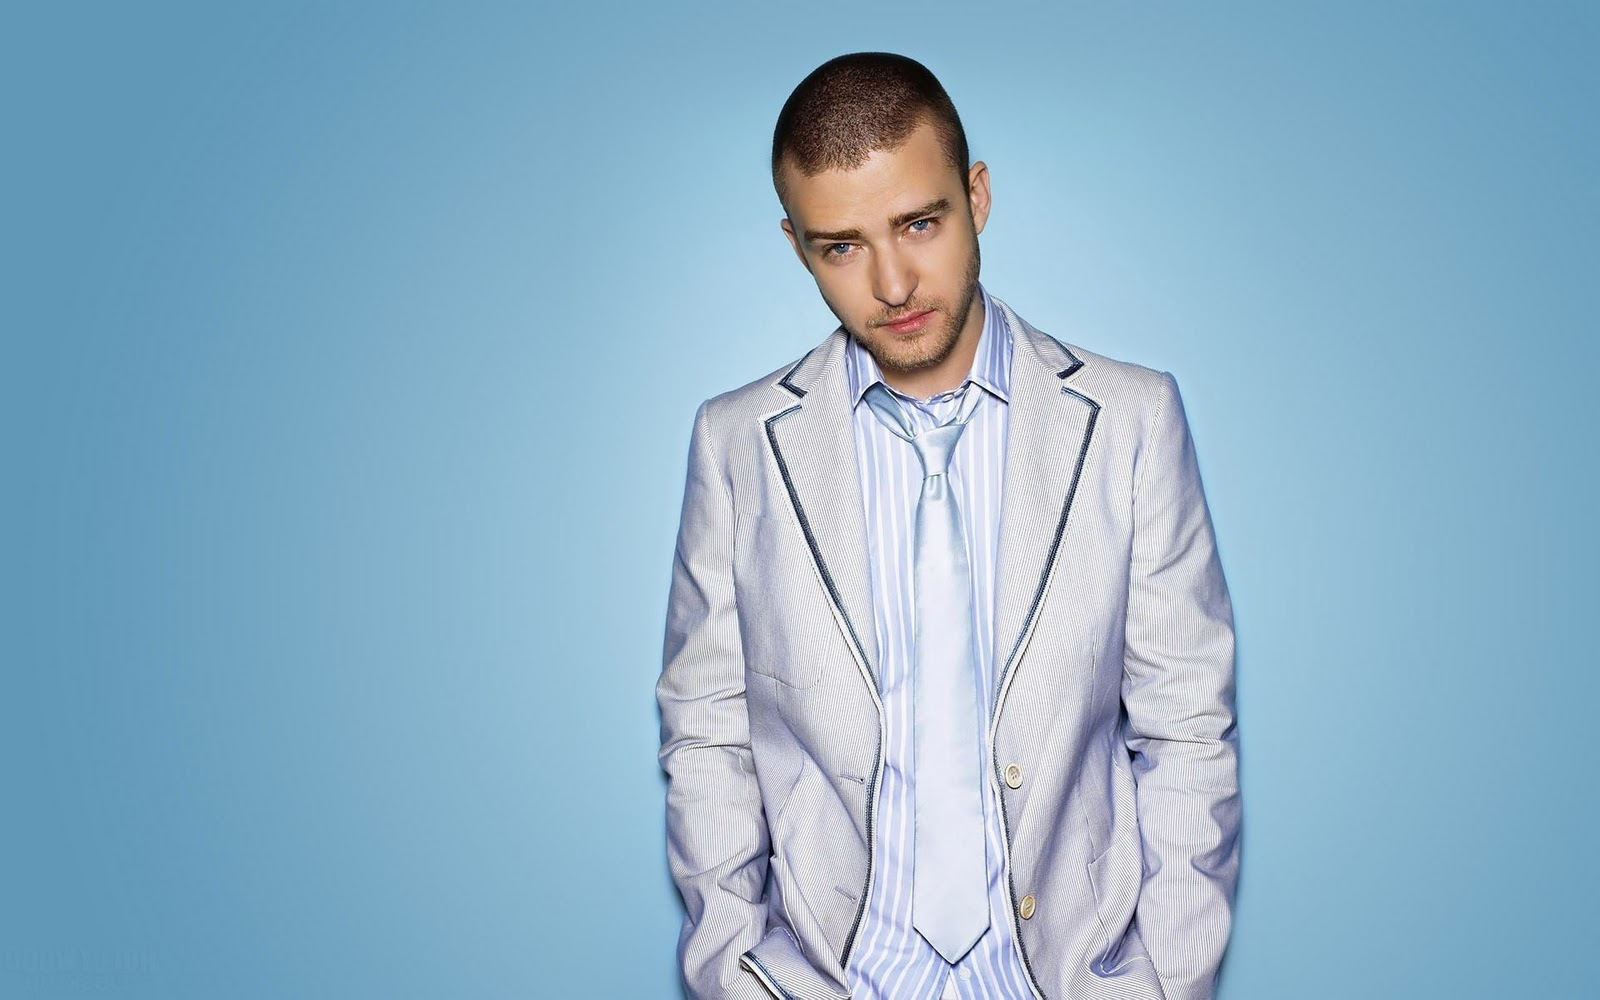 http://1.bp.blogspot.com/-ESaMFb9O164/TuovsyneKqI/AAAAAAAAAyY/w9R_nbpldcM/s1600/Justin-Timberlake-pictures-pc-desktop-Wallpapers-HD-photo-images-1.jpg